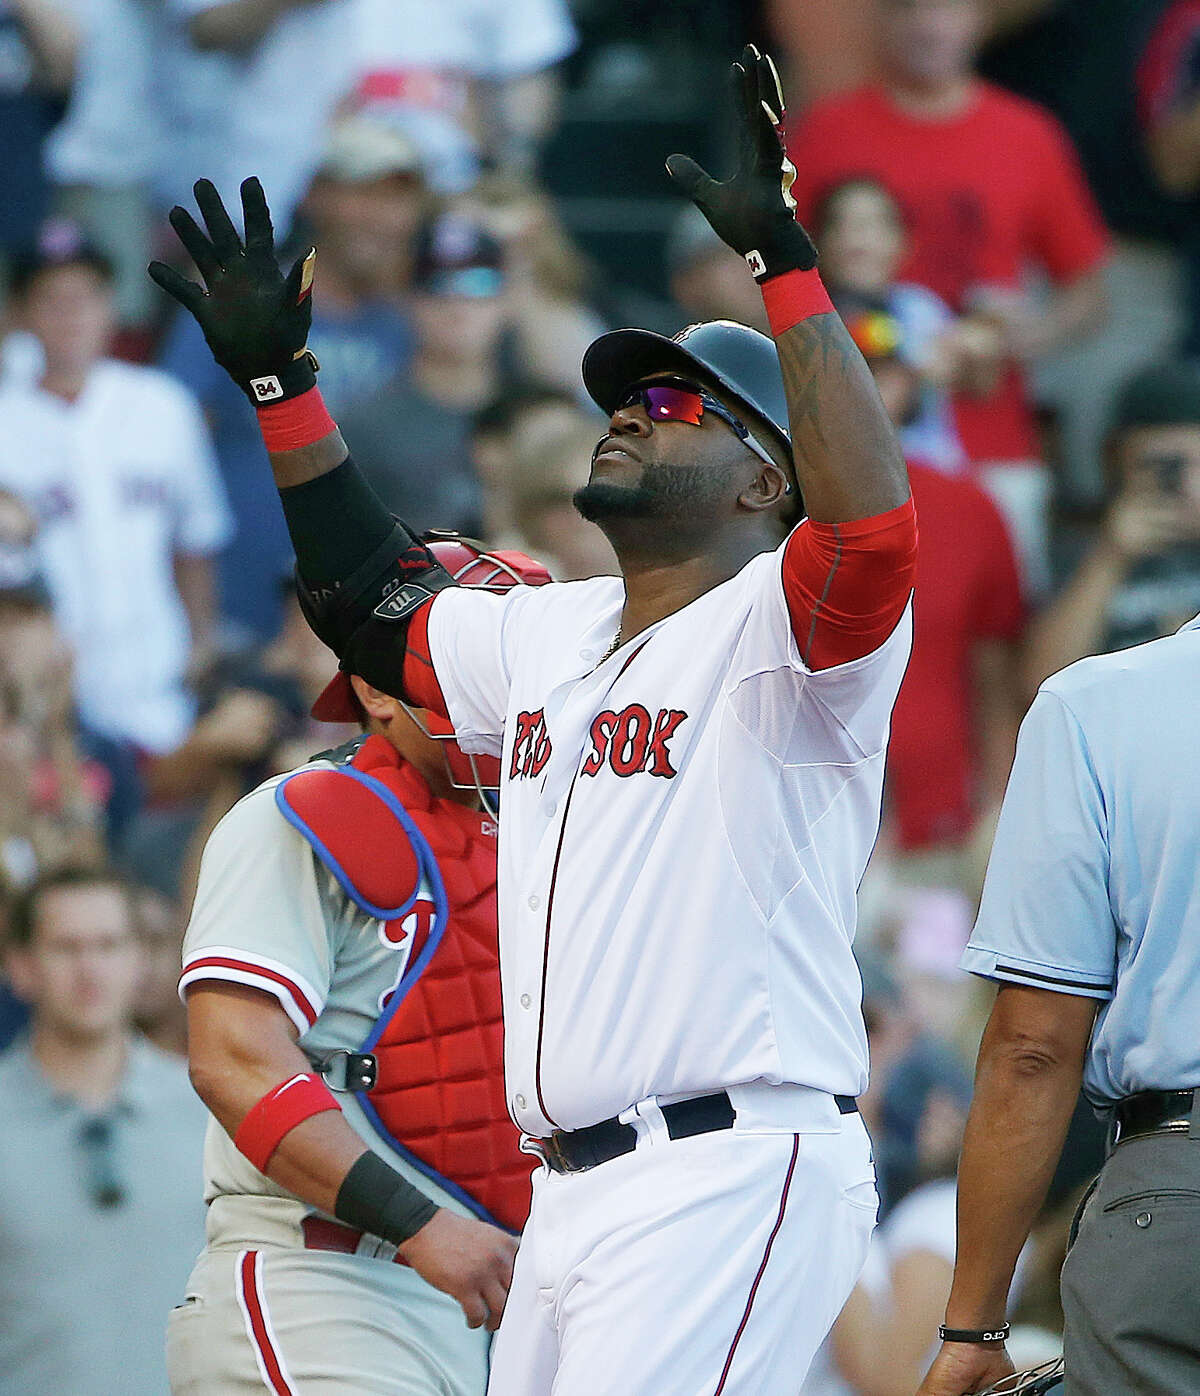 Boston Red Sox's David Ortiz celebrates his solo home run during the fourth inning of a baseball game against the Philadelphia Phillies in Boston, Saturday, Sept. 5, 2015. (AP Photo/Michael Dwyer) ORG XMIT: MAMD107